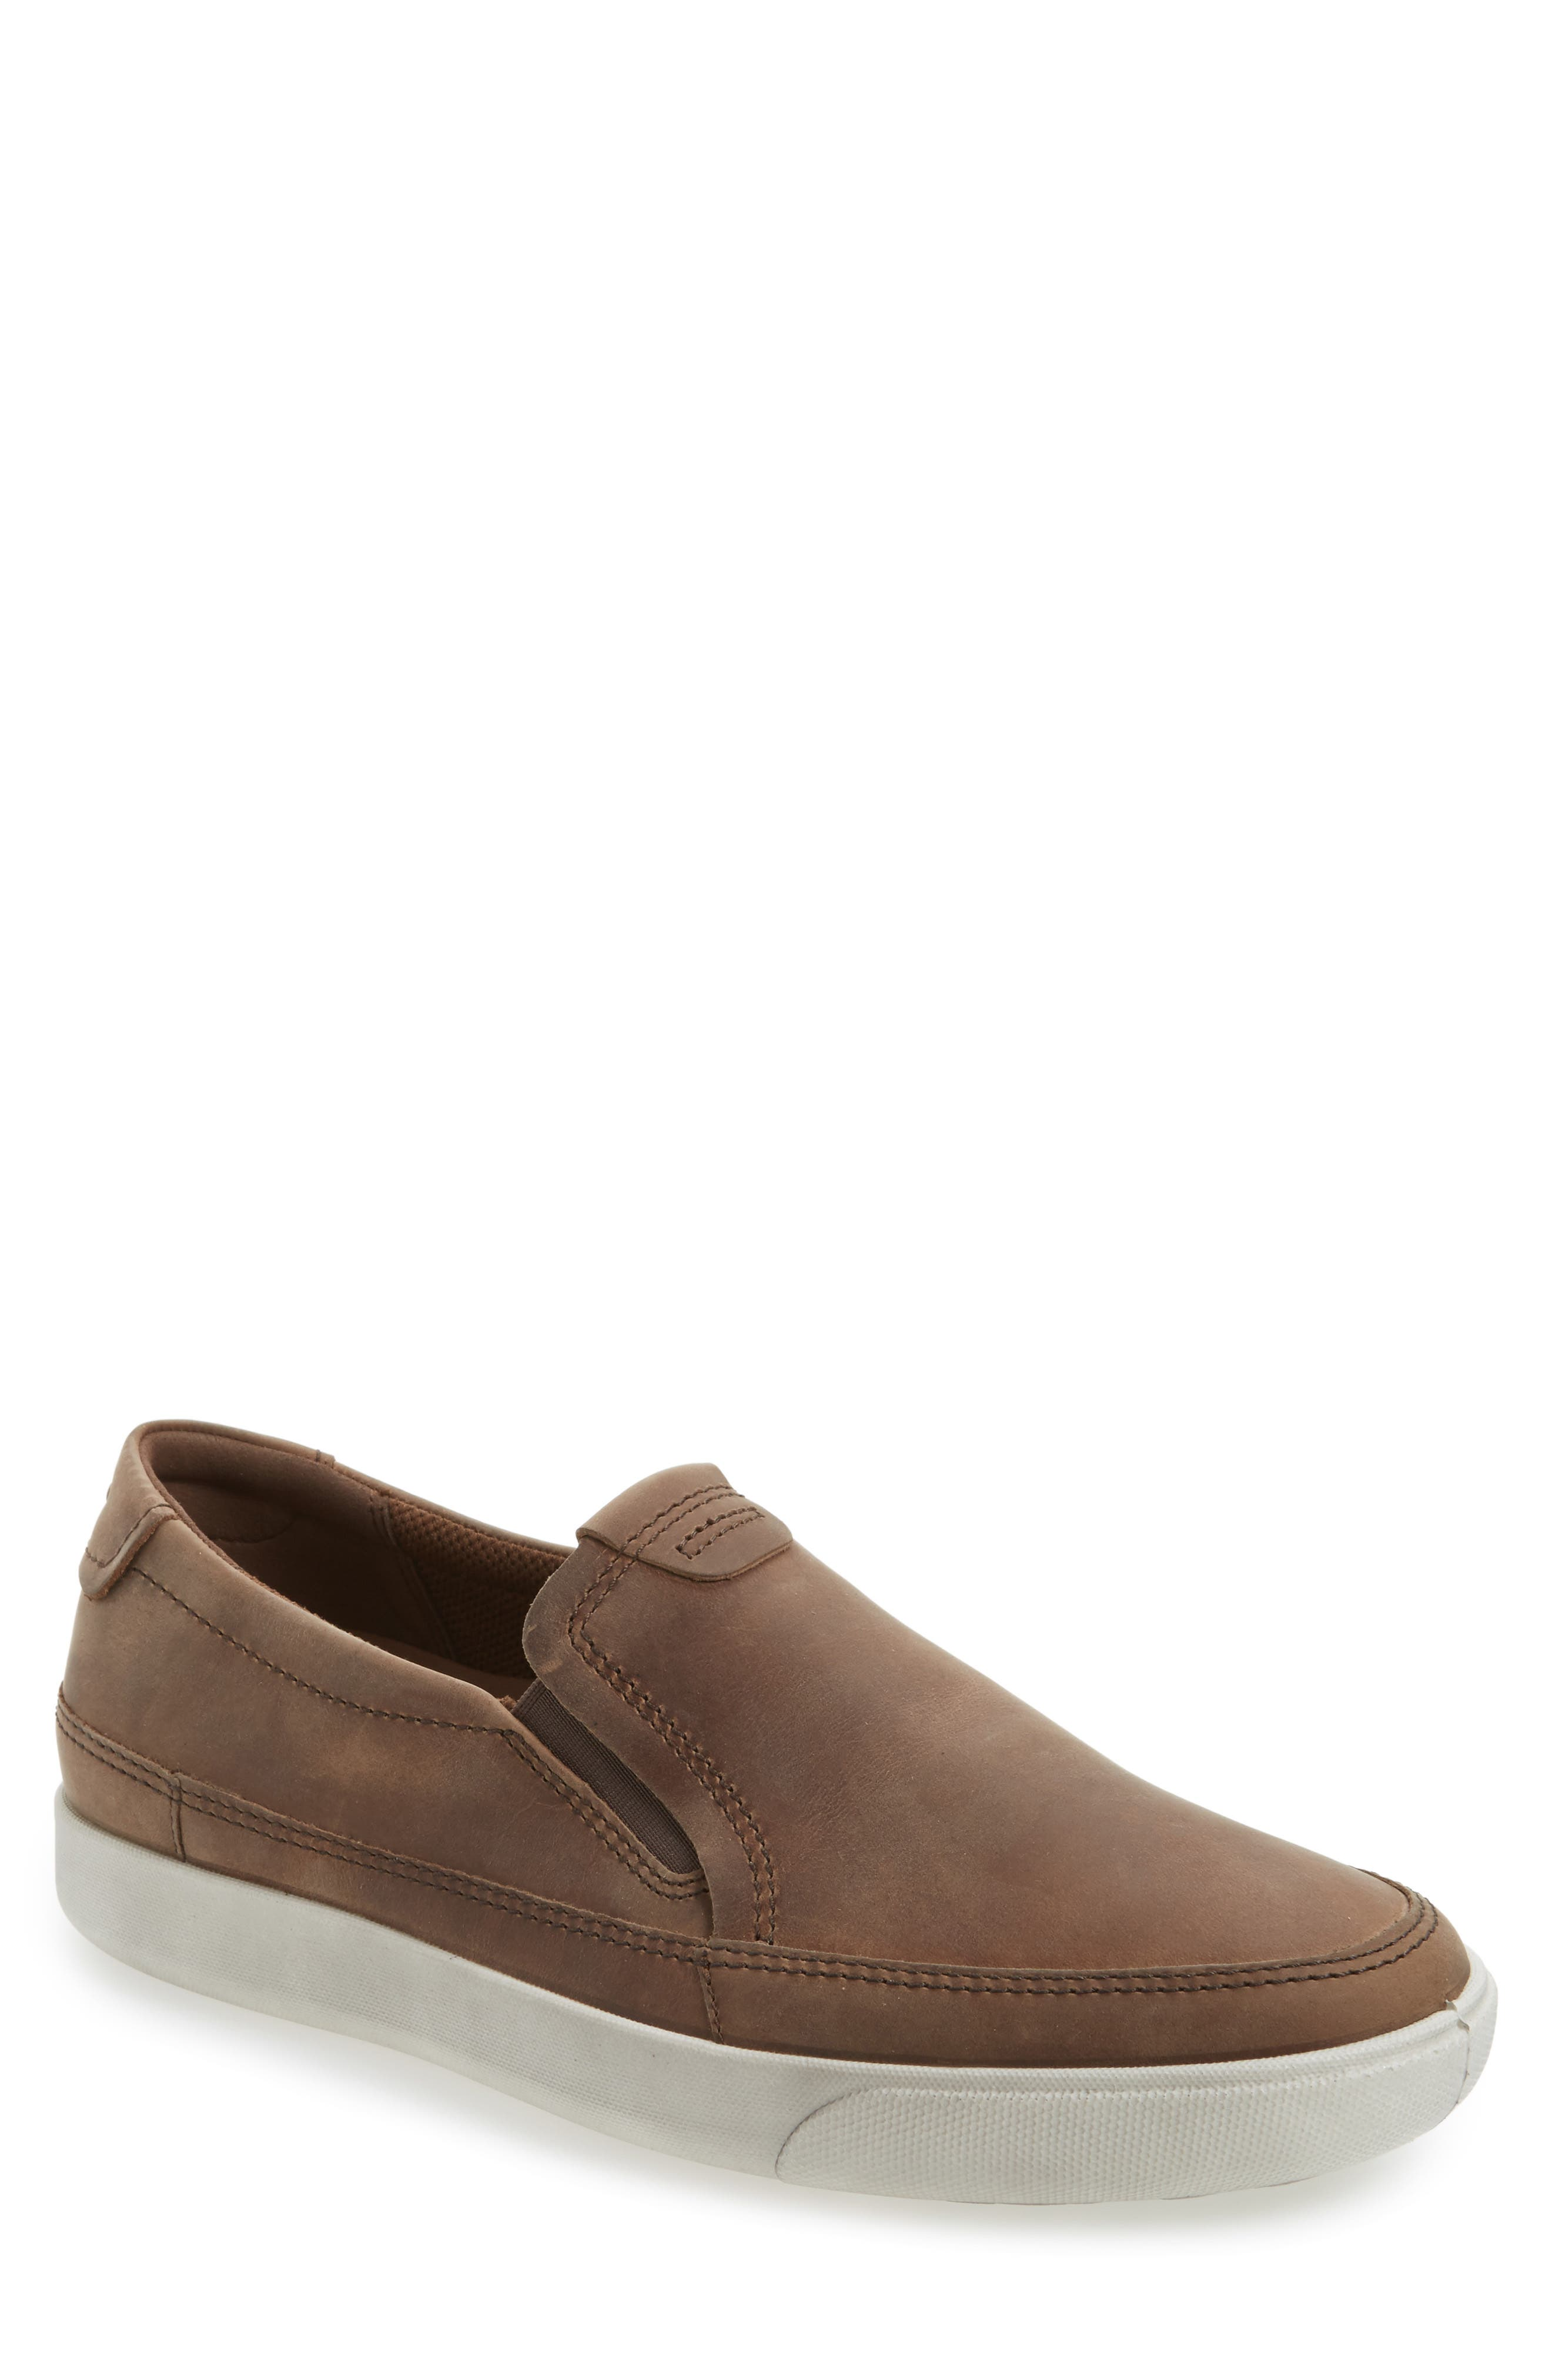 'Gary' Slip-On,                             Main thumbnail 1, color,                             COCOA BROWN LEATHER